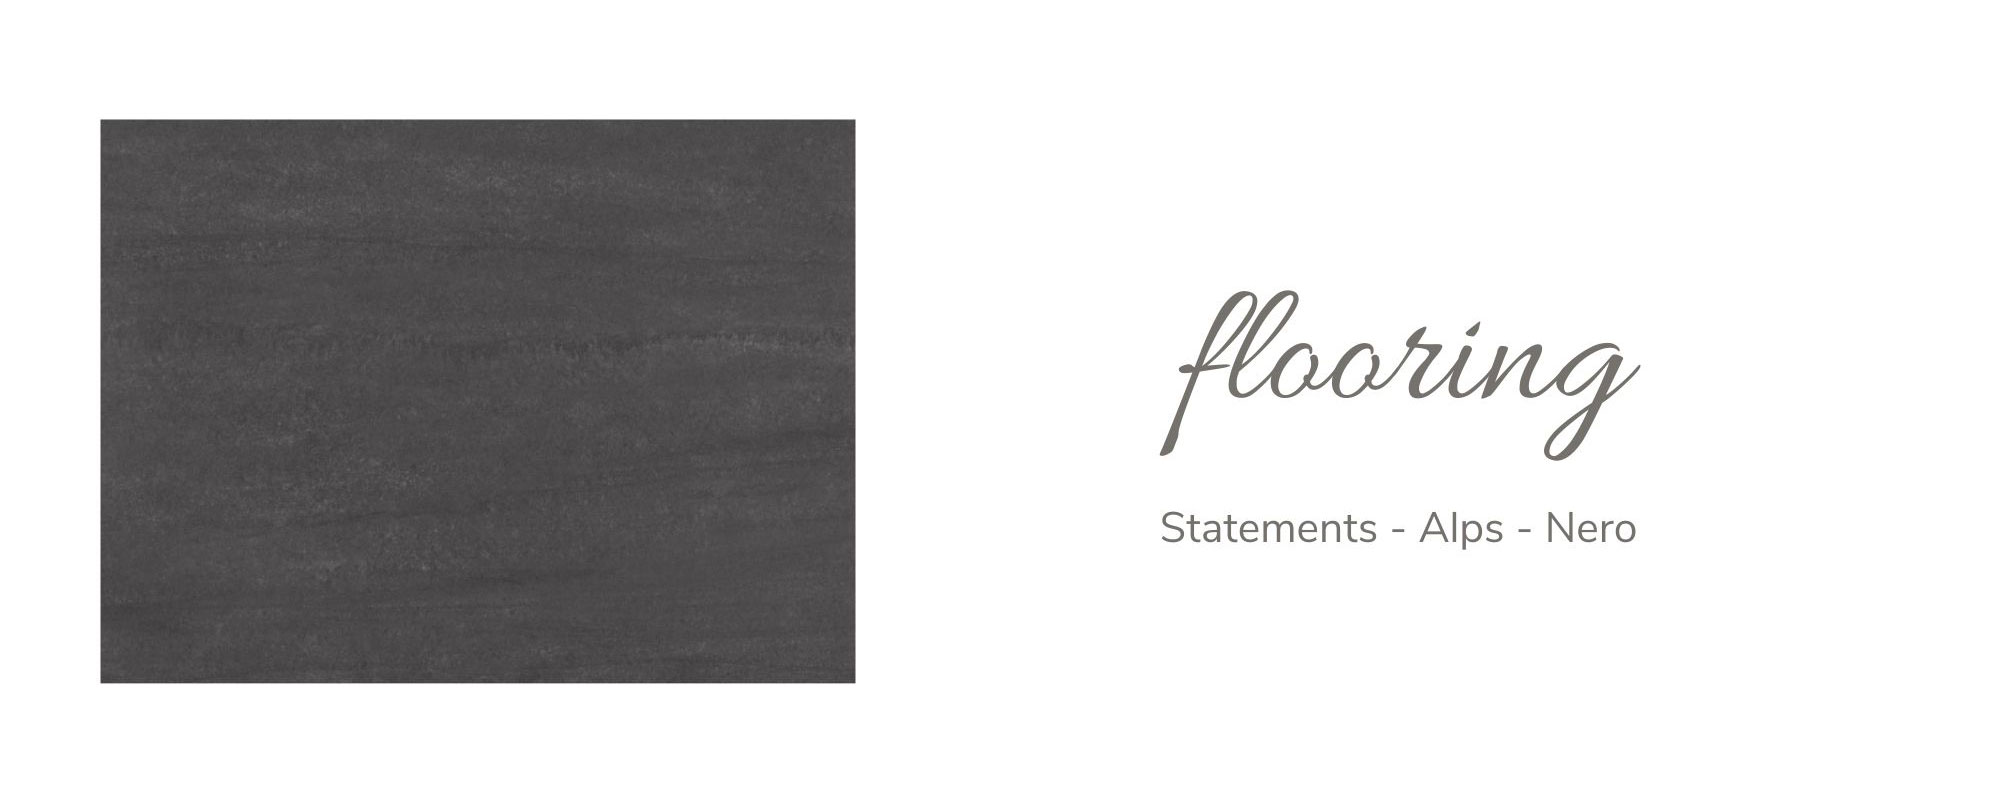 Statements - Alps - Nero Flooring